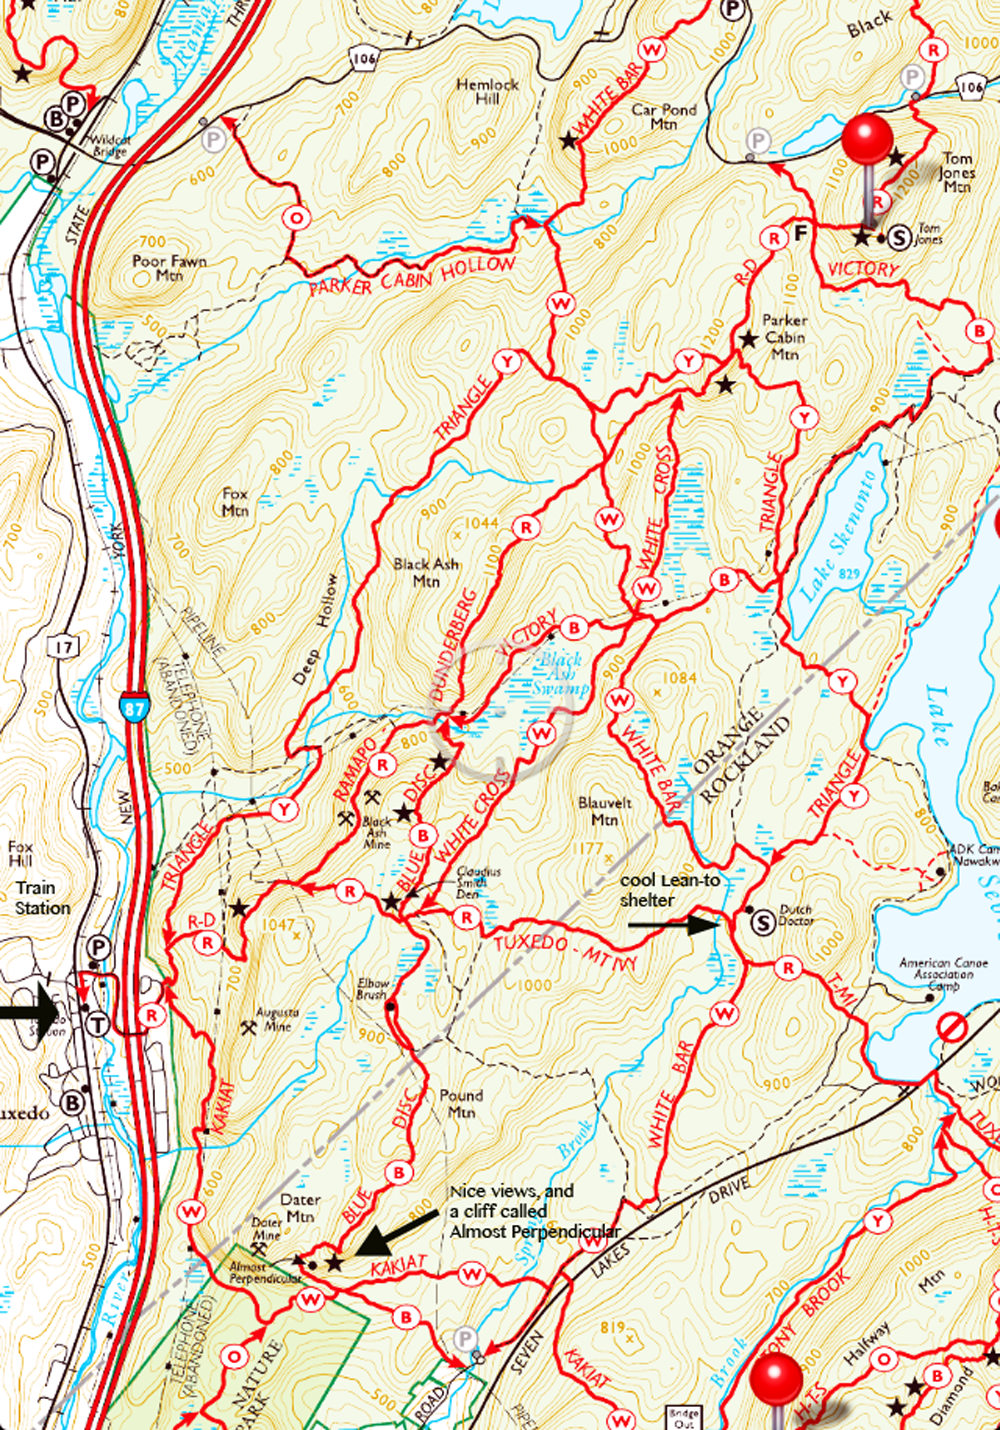 Harriman-bear mountain trails maps pdfs